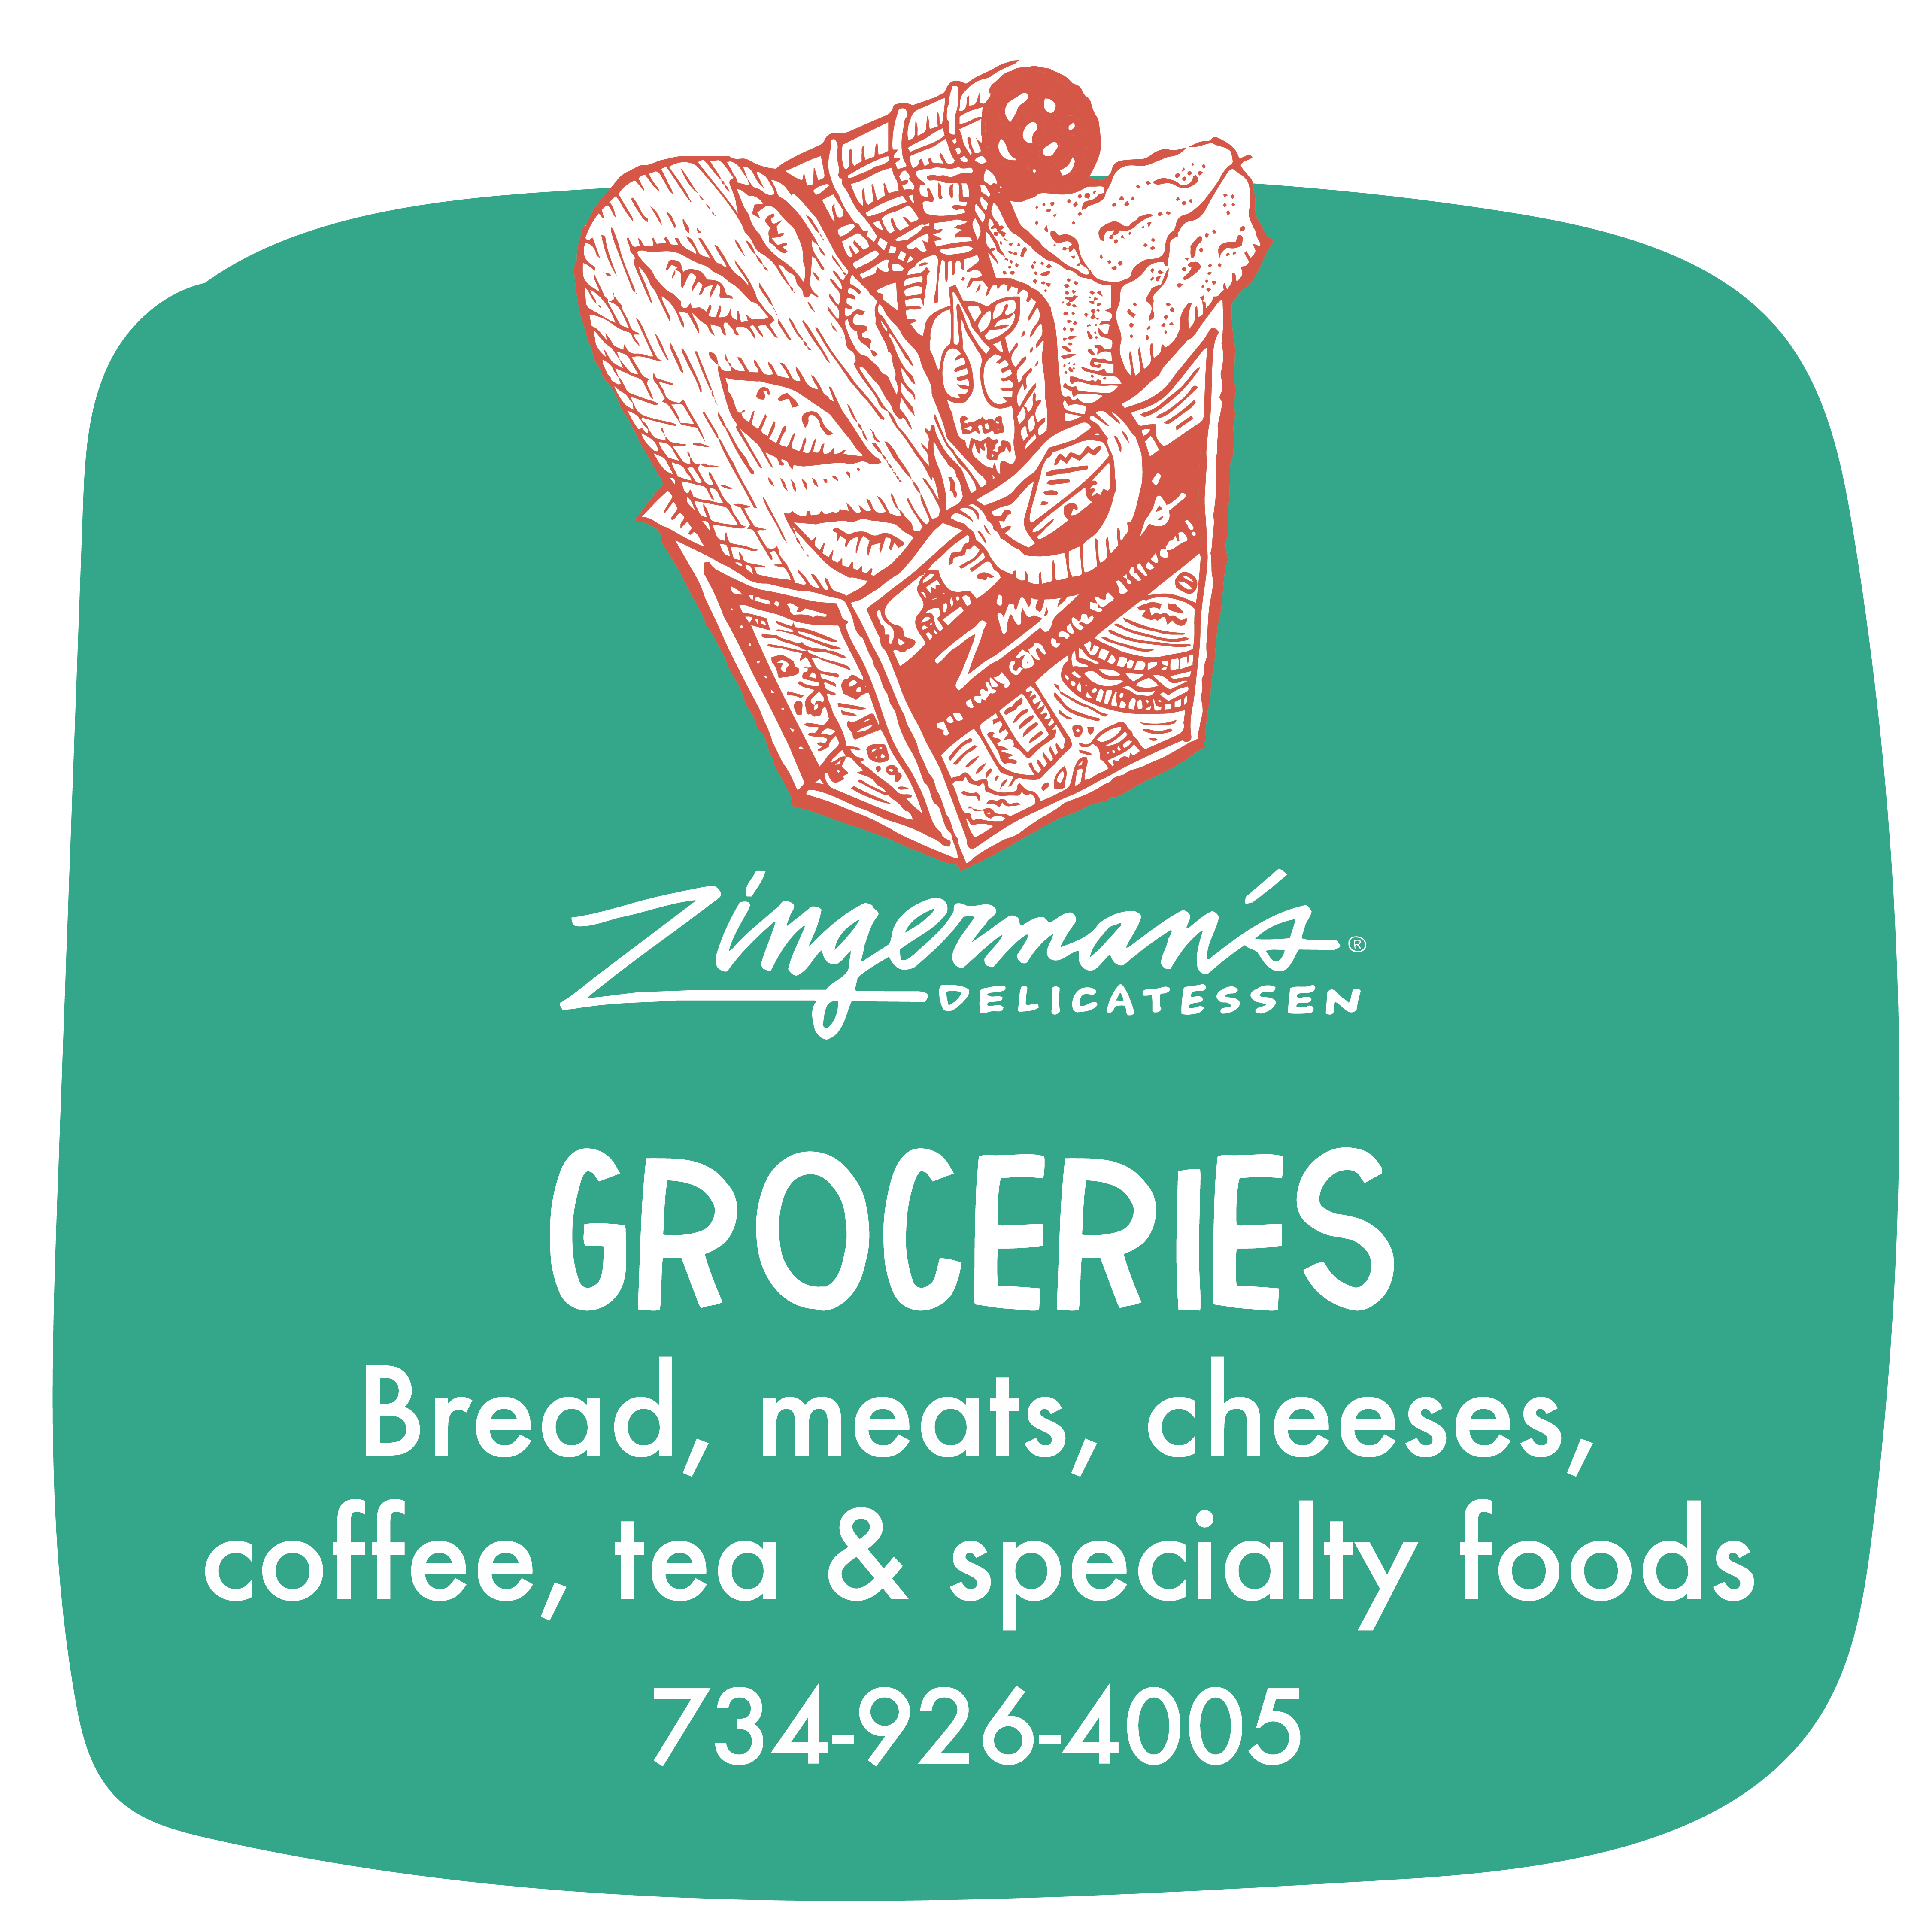 Zingerman's Groceries, bread, meats, cheeses, coffee, tea and specialty foods